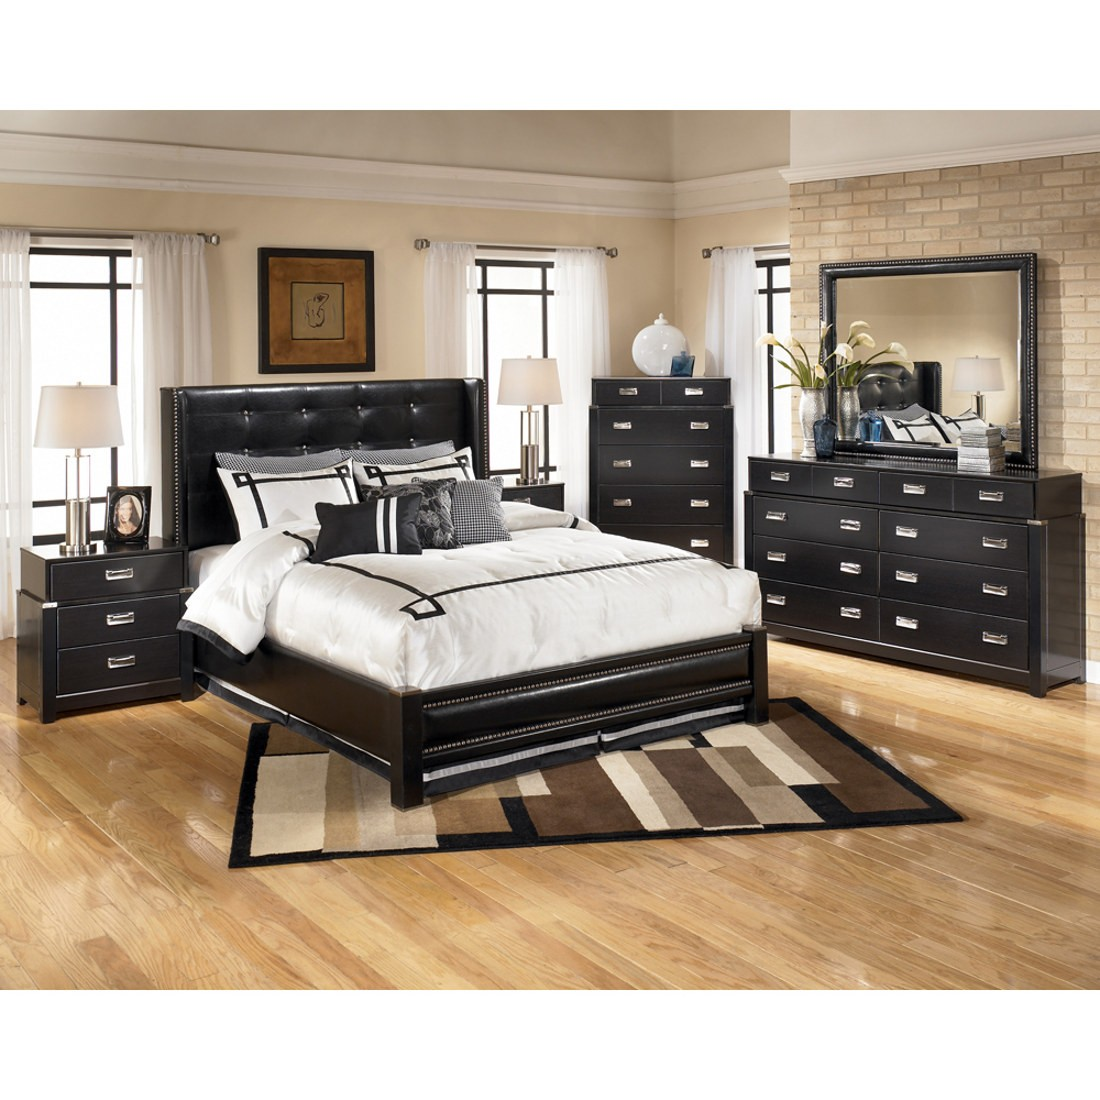 Diana Platform Bedroom Set in Deep Espresso